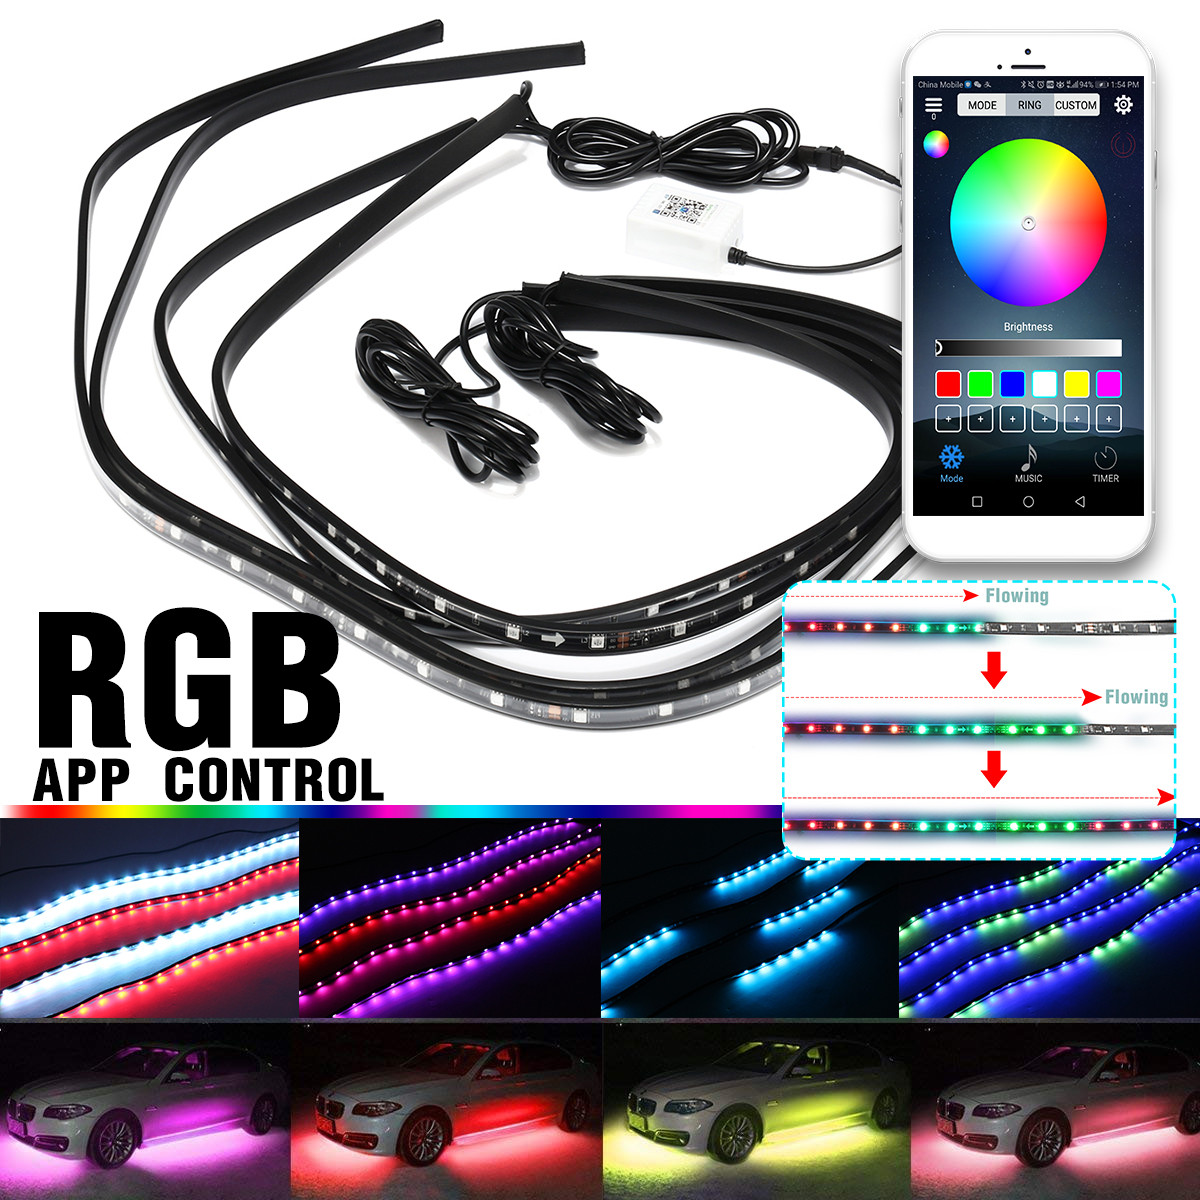 1Set/ RGB LED Under Car Tube Strip Underglow body Light Kit APP Wireless Control Strip light Decoration Auto Under Glow Light car styling 7 color led strip under car tube underglow underbody system neon lights kit ma8 levert dropship